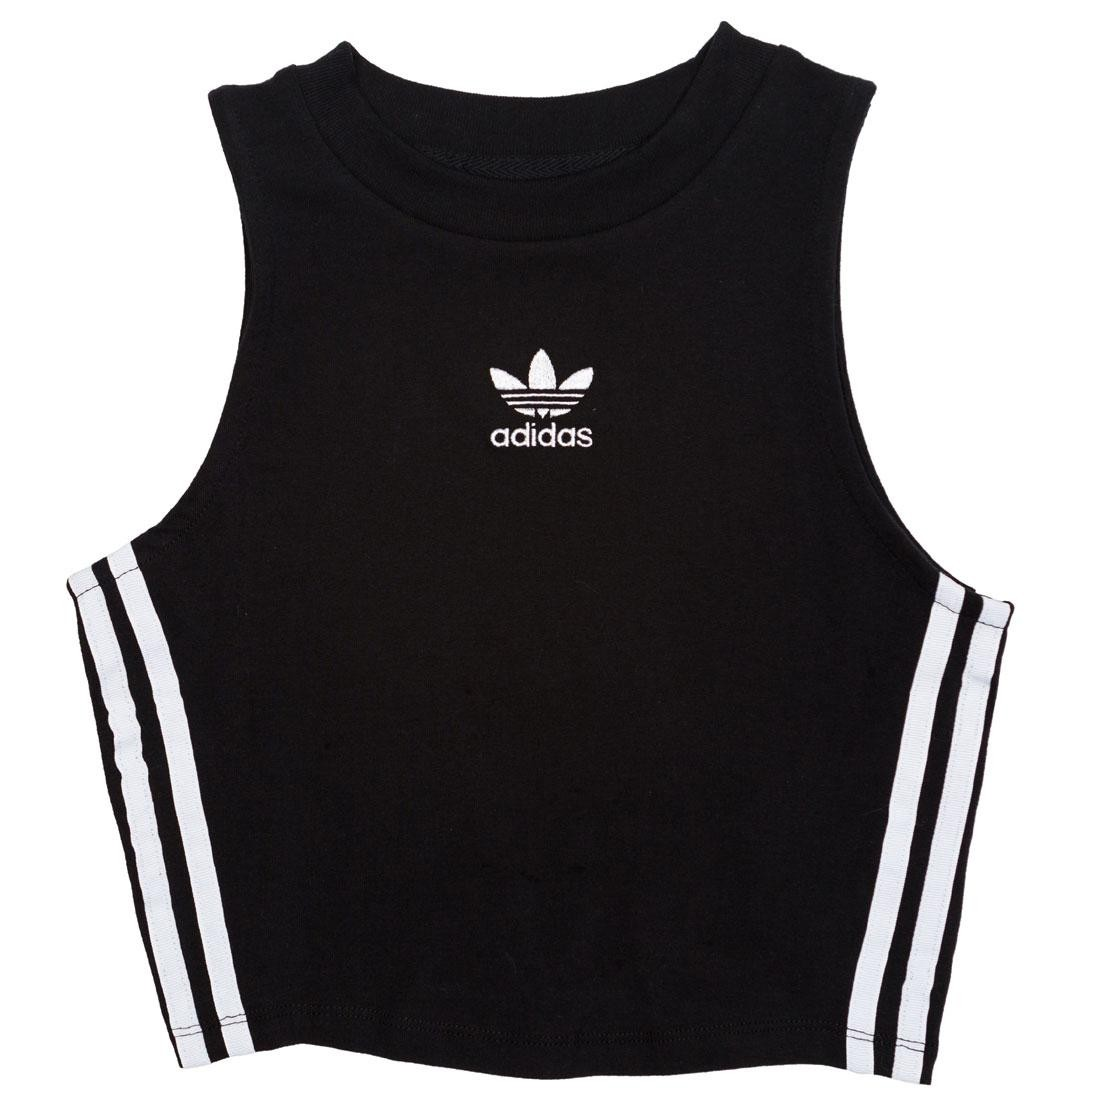 400afd4469 Adidas Women Crop Top Tank (black)